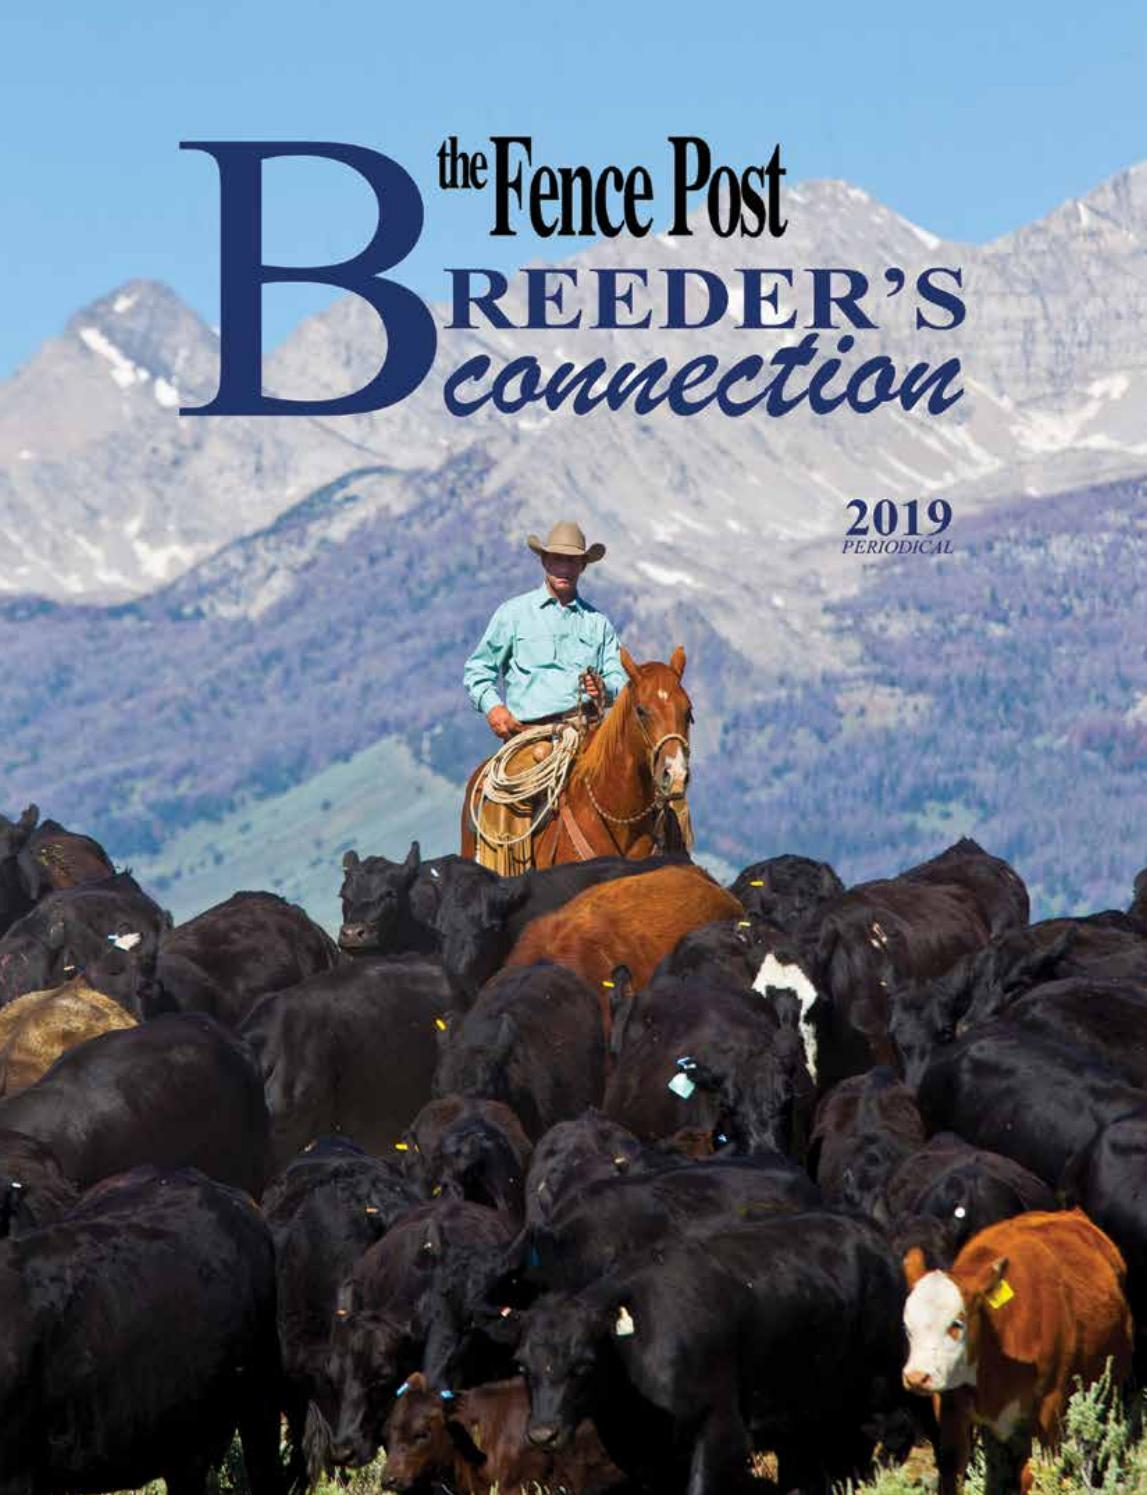 The Fence Post: Breeder's Connection 2019 by Tri-State